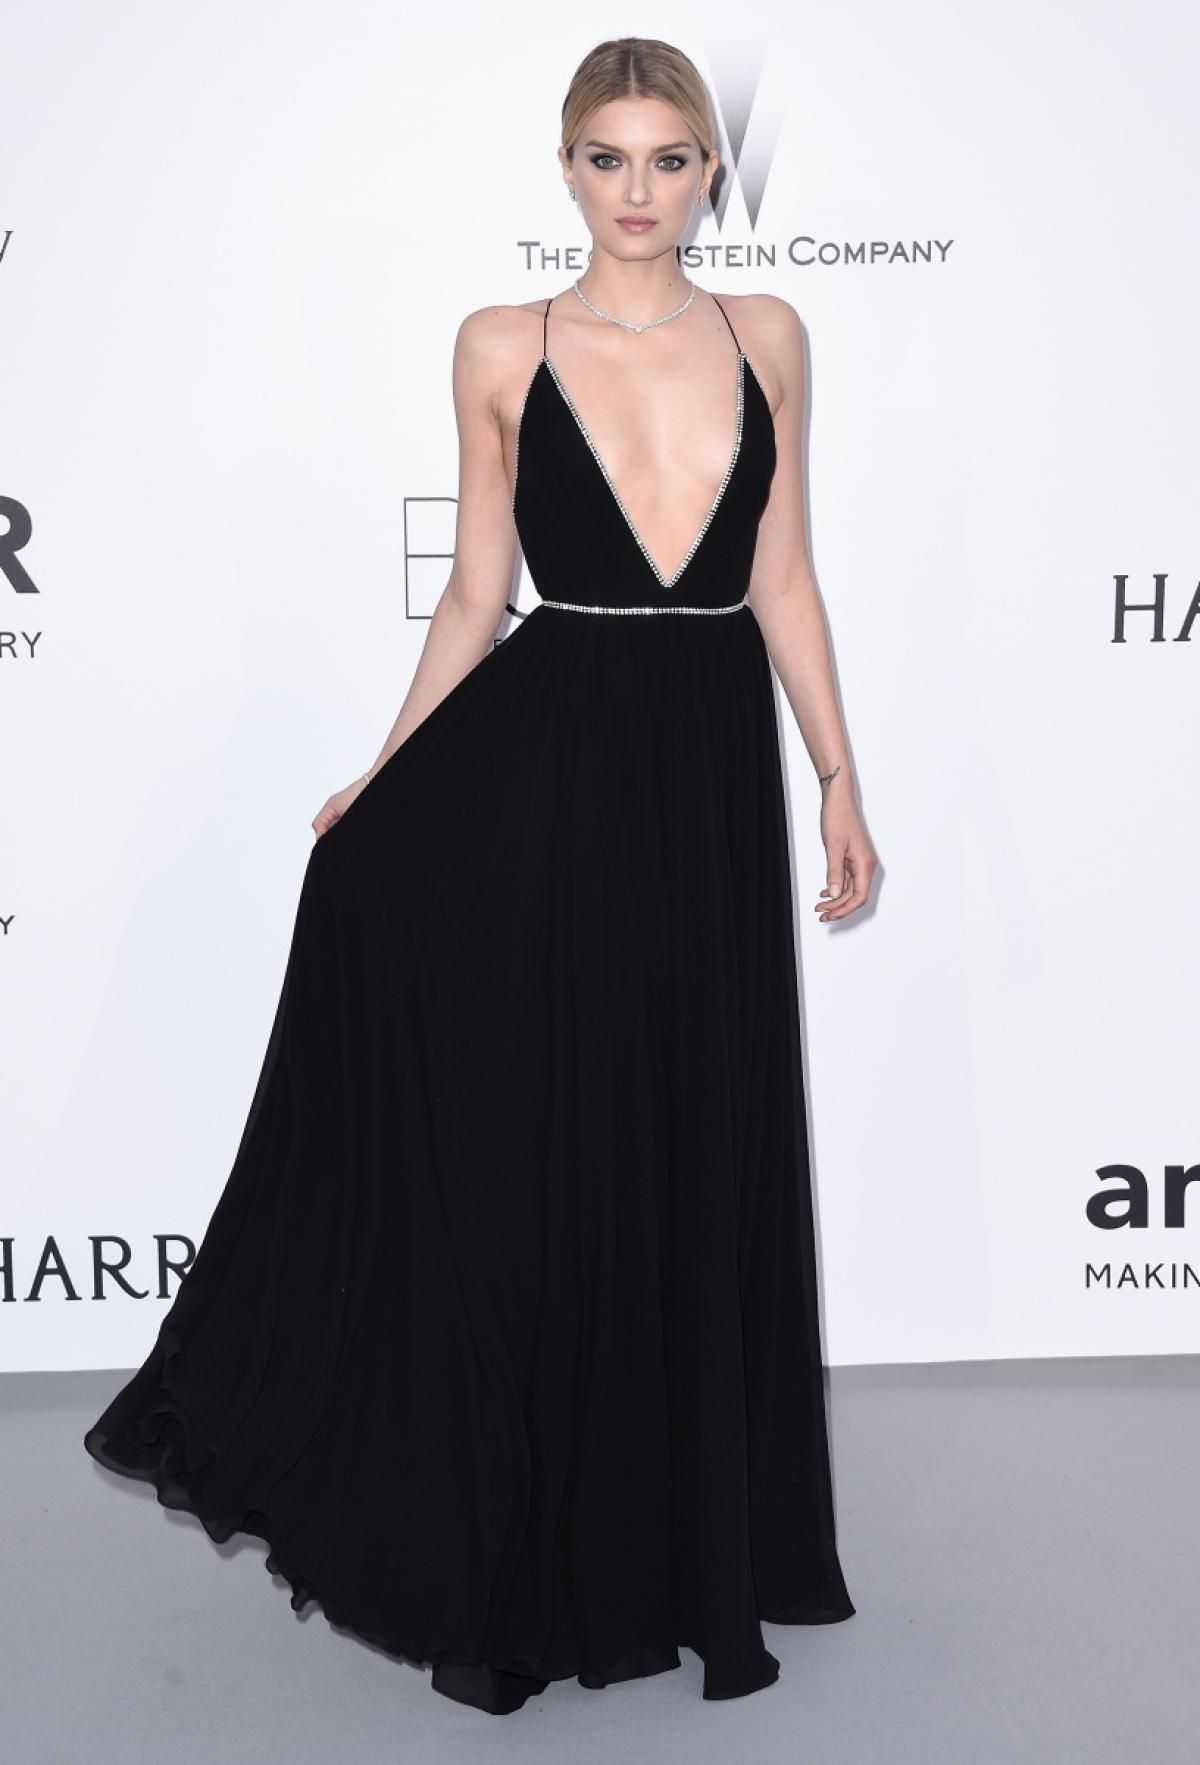 lily-donaldson-at-amfar-s-2015-cinema-against-aids-gala-in-cap-d-antibes_1.jpg